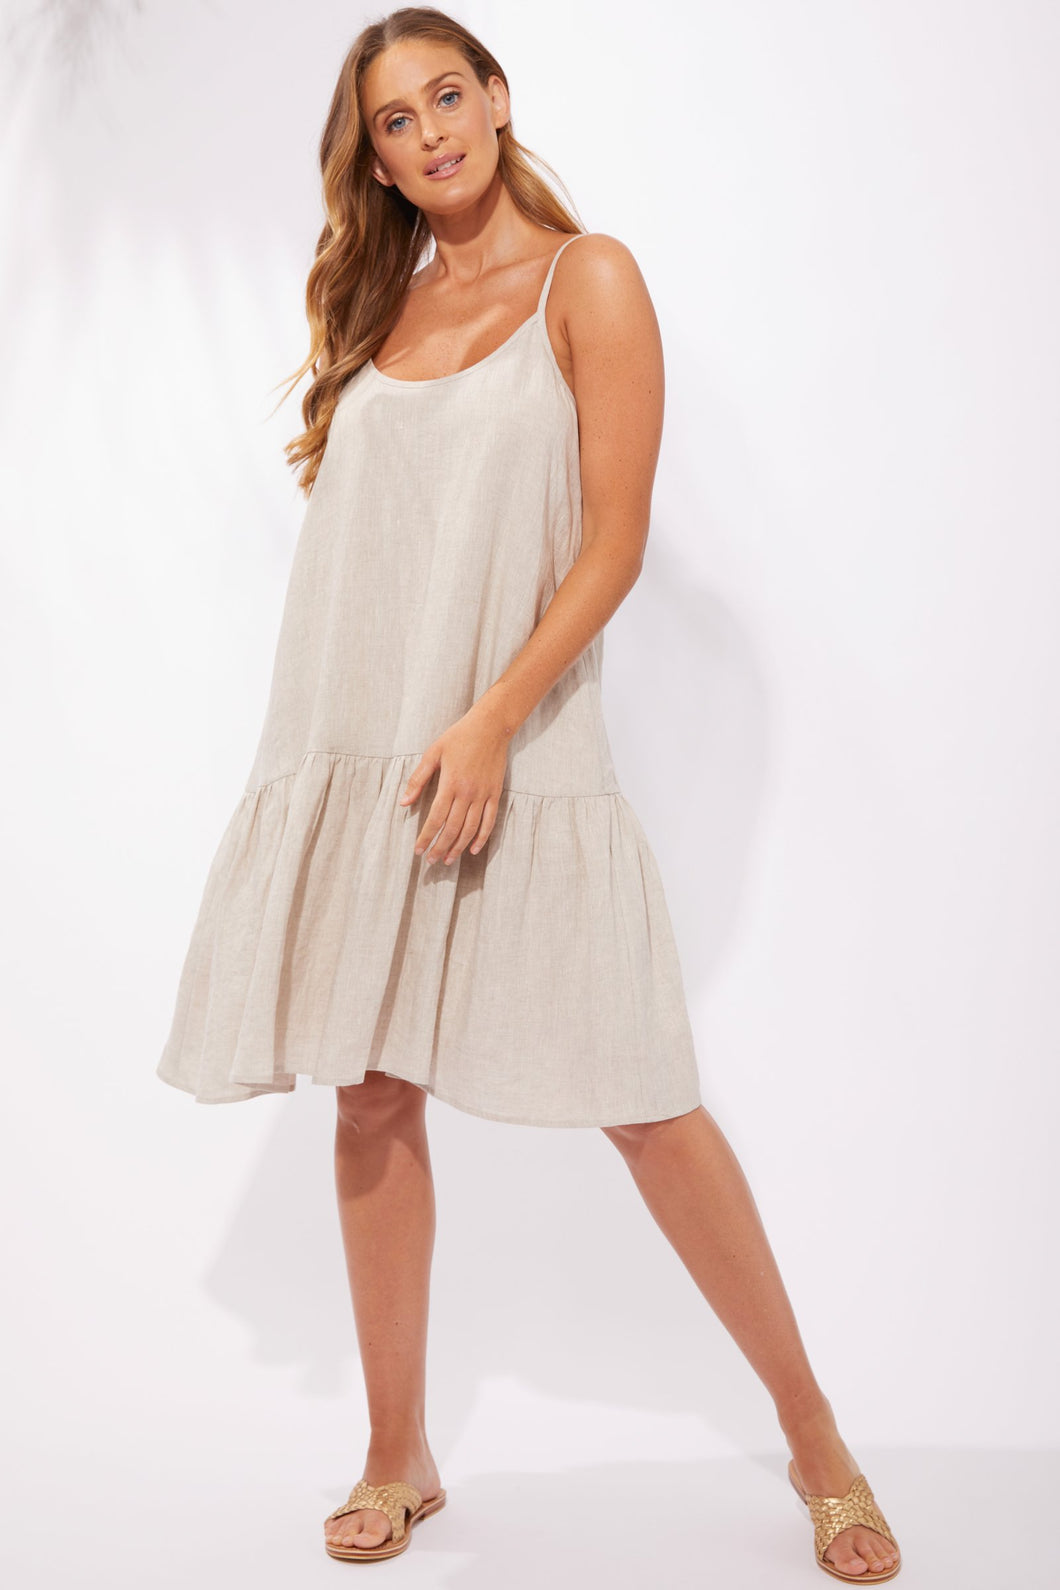 Haven Clothing Majorca String Dress Sand Basic State Australian Stockist Majorca String Dress Sand Tan Midi Dress Haven